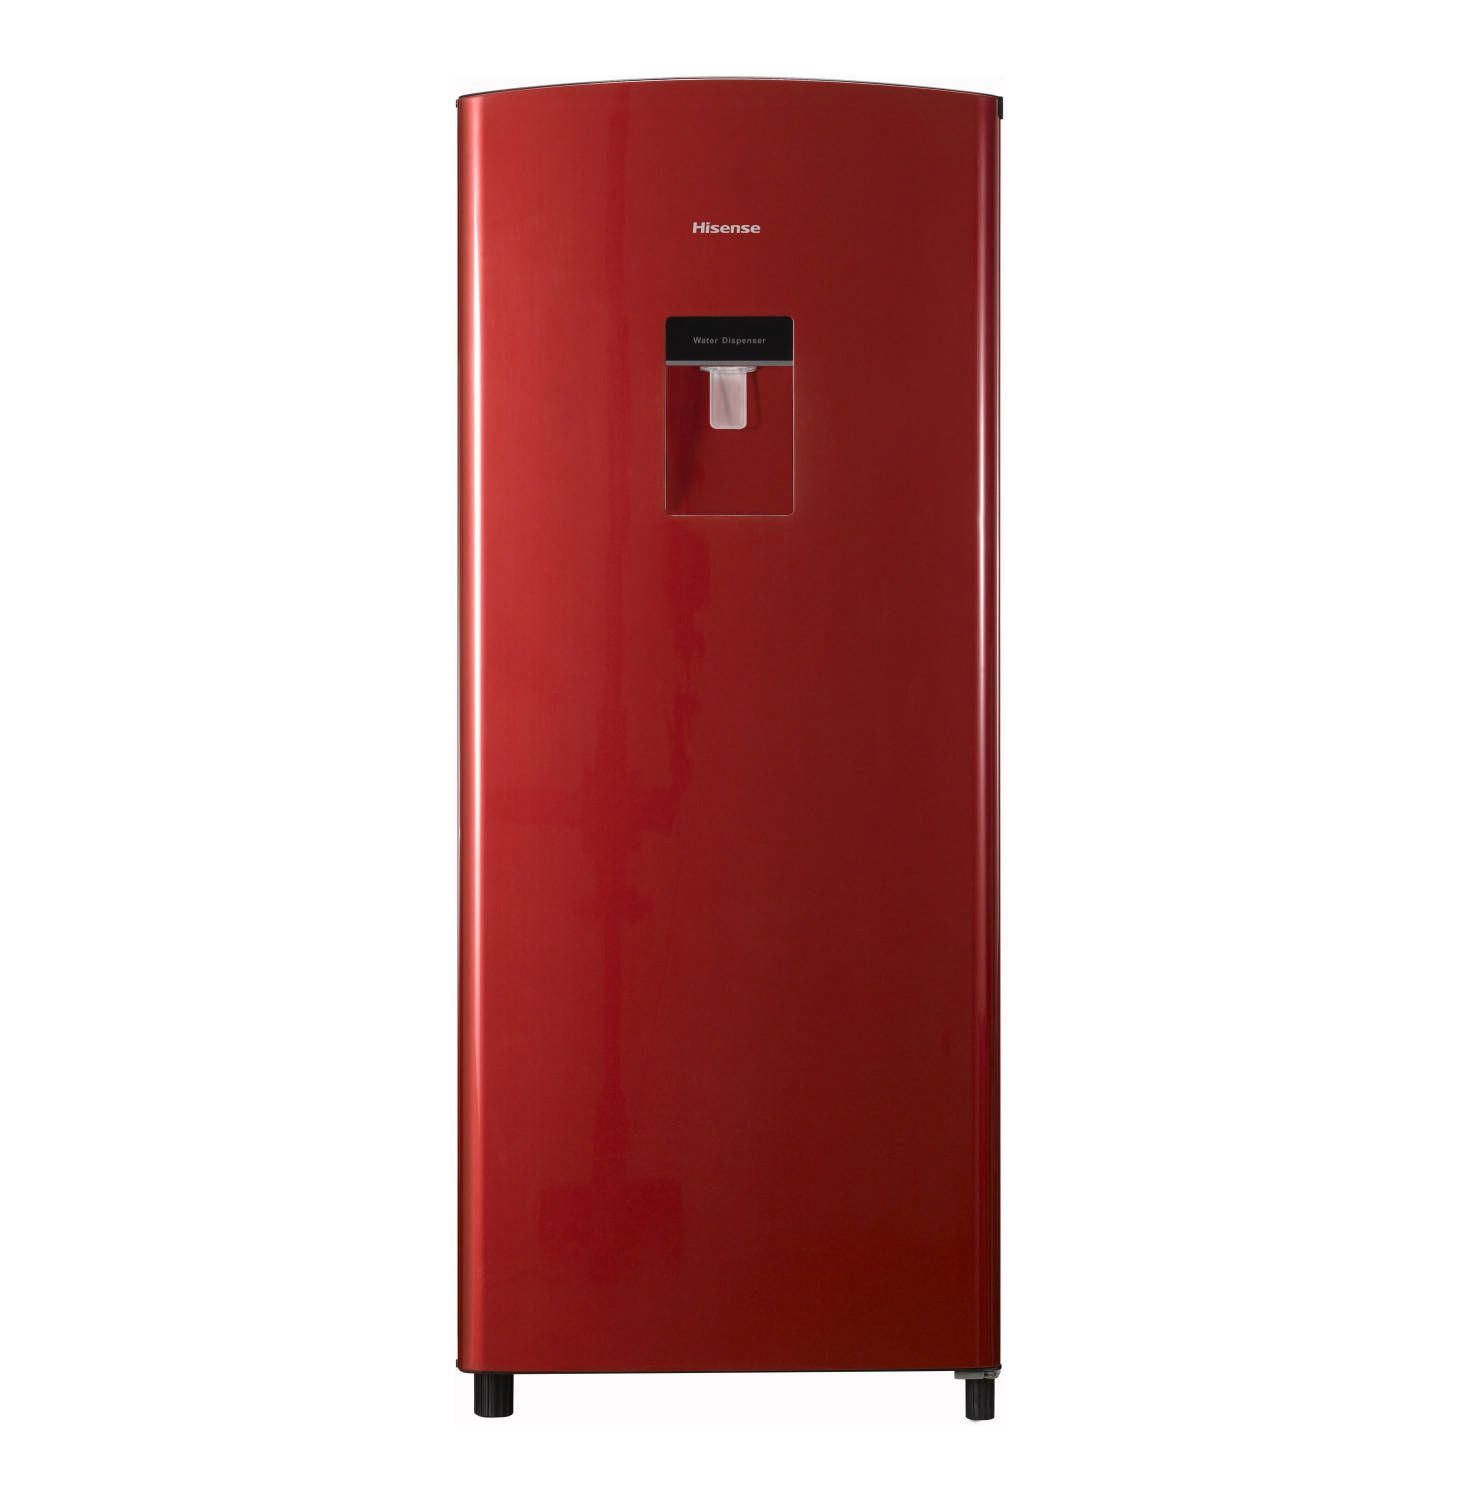 Hisense Single Door Fridge With Water Dispenser Single Doors Single Door Fridge Water Dispenser